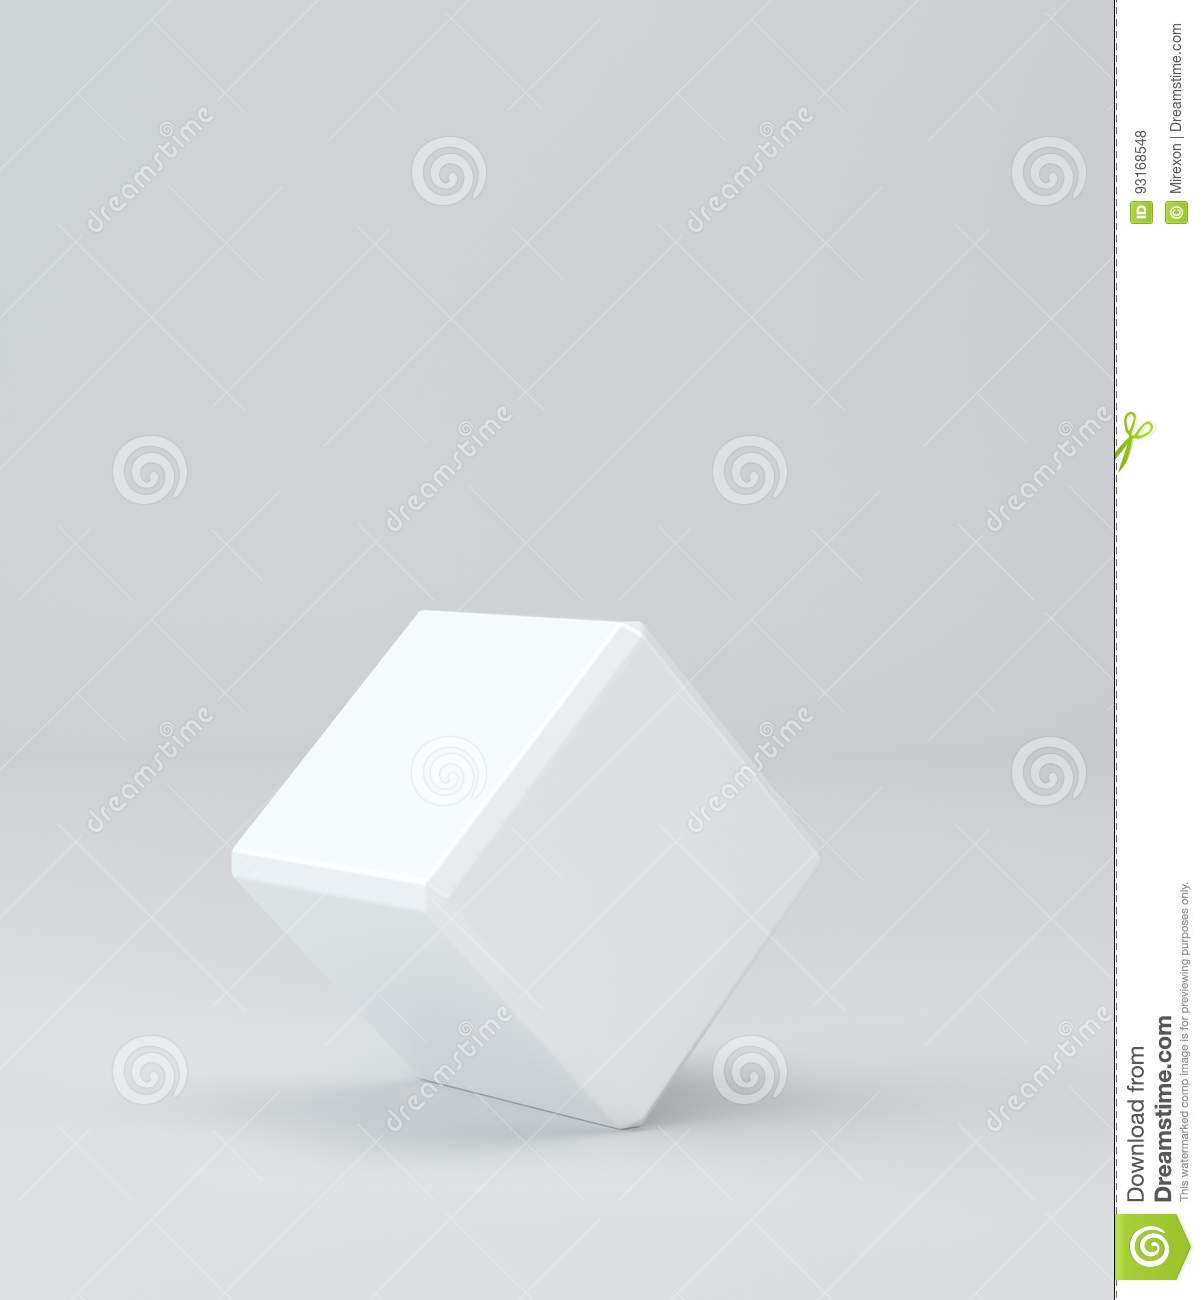 Empty blank cube box template on background 3d rendering stock royalty free stock photo buycottarizona Gallery